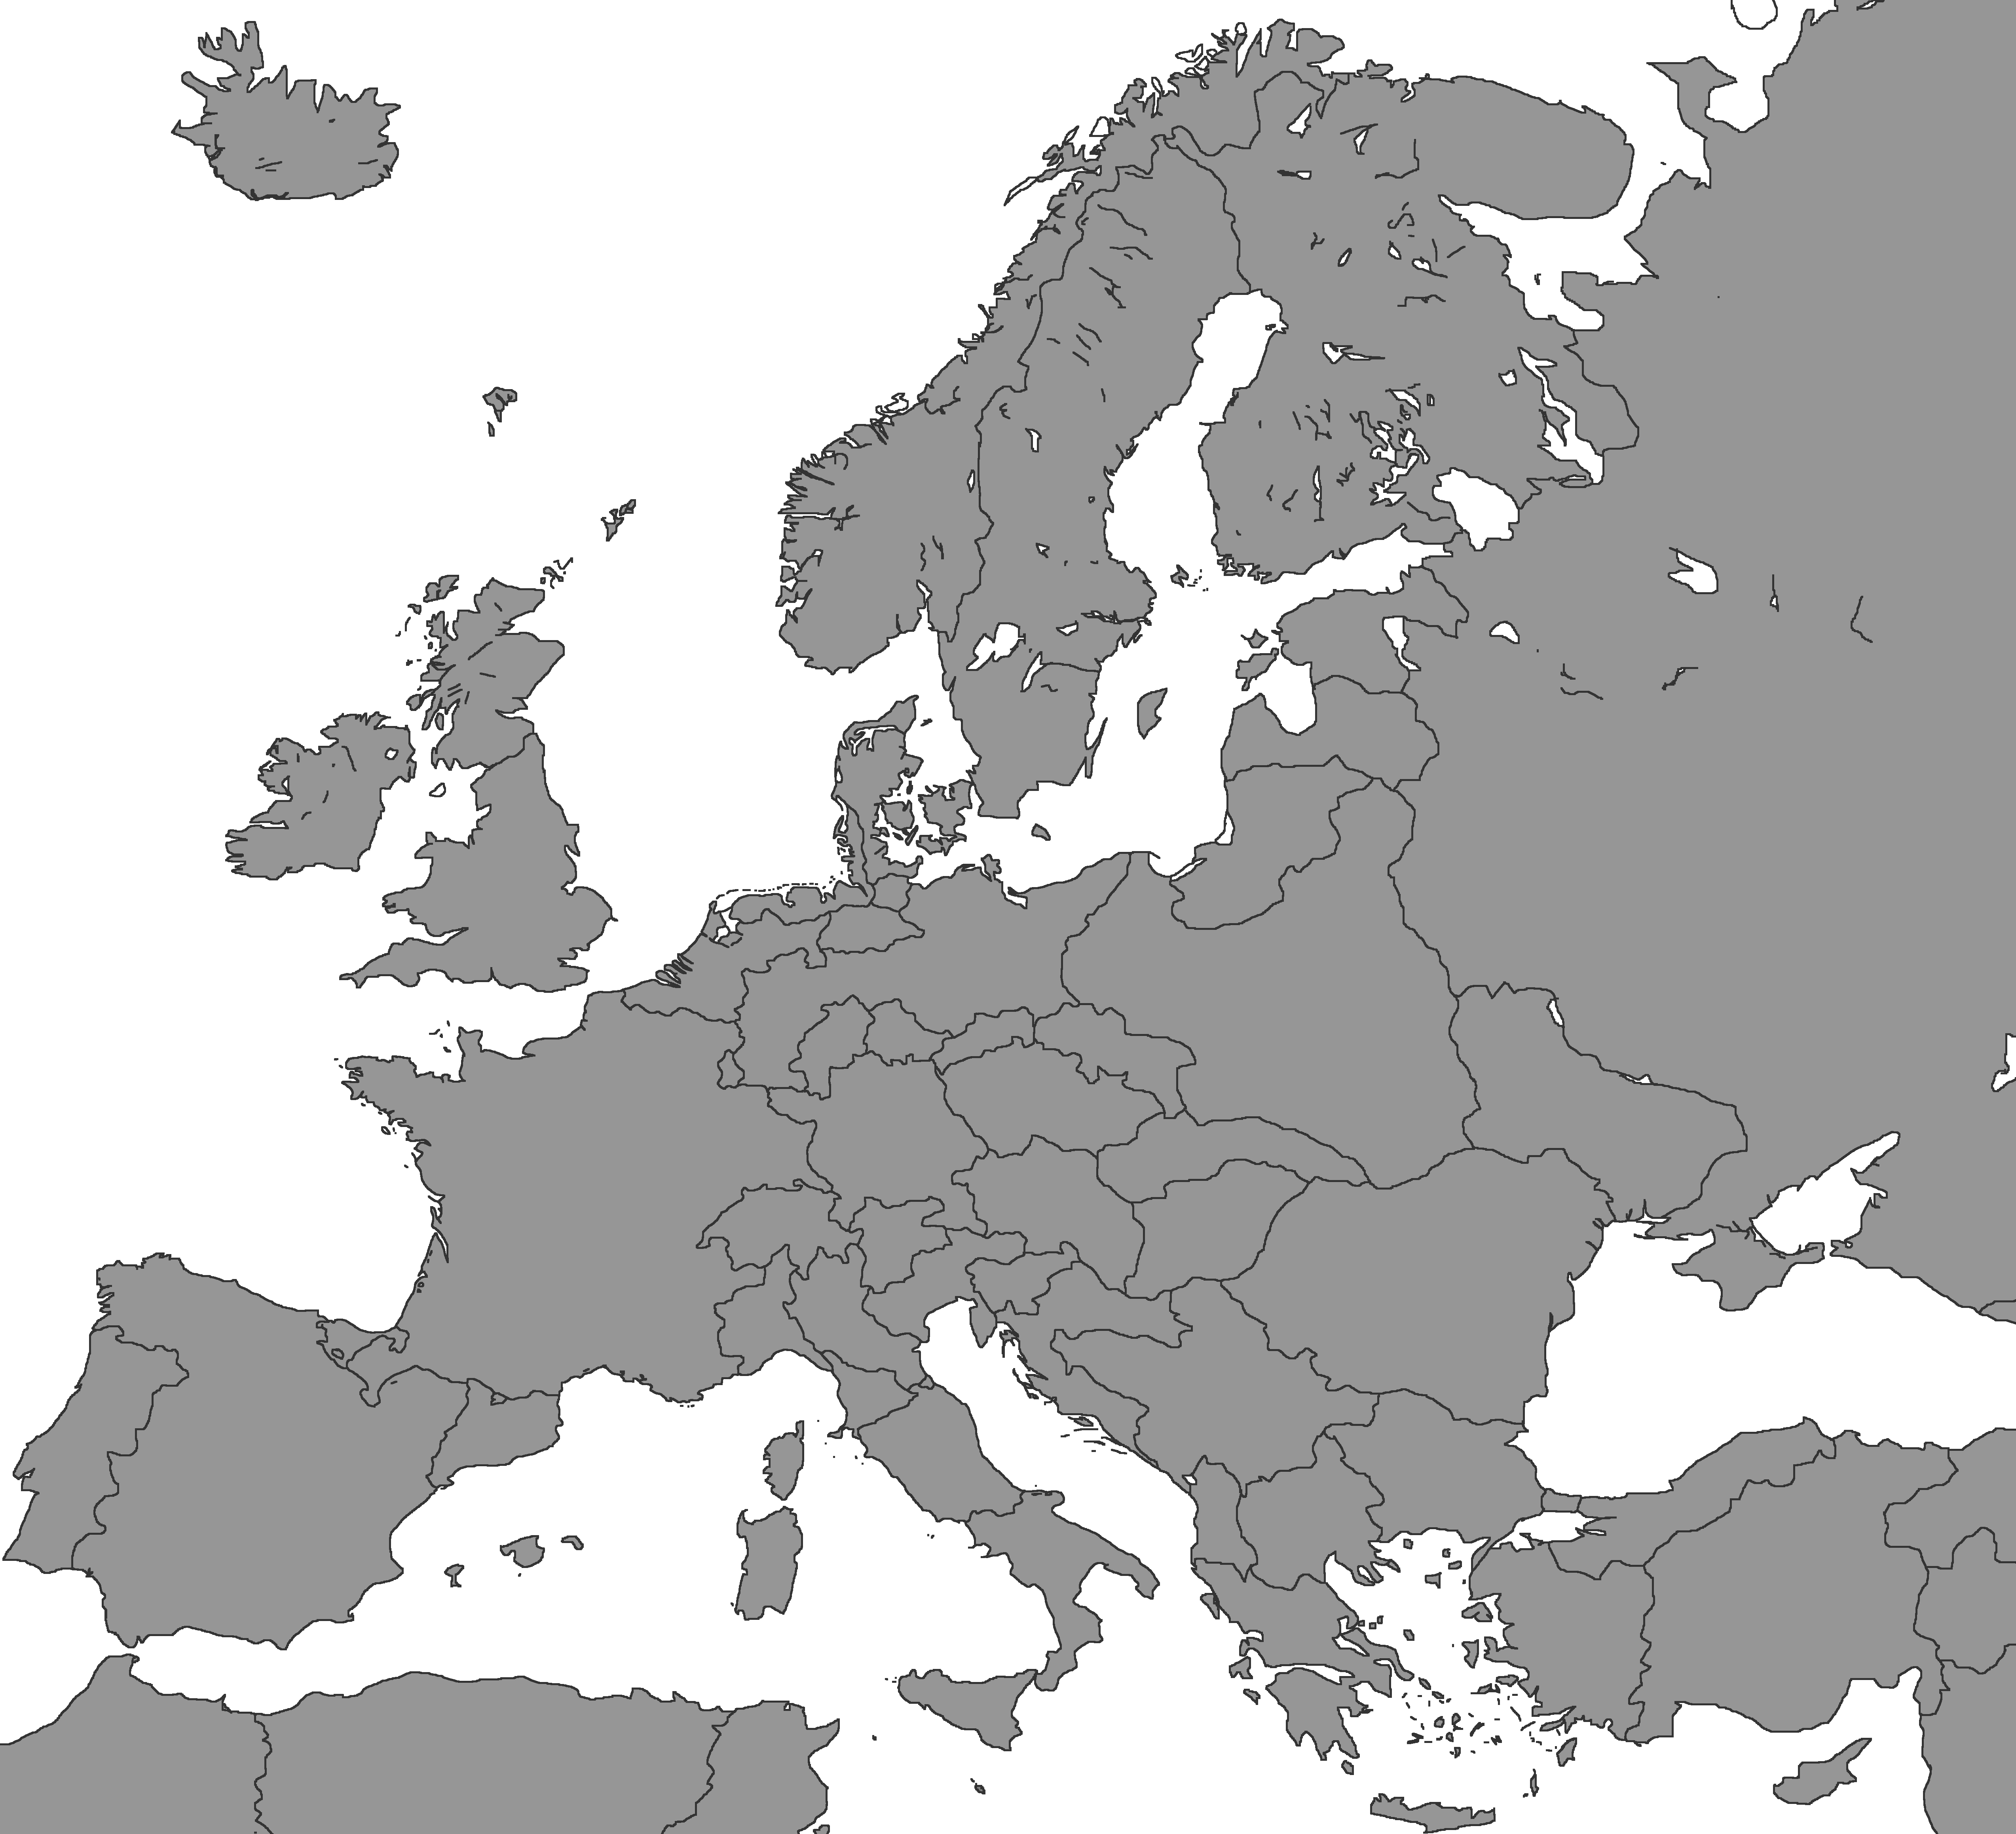 blank map of europe 2016 AH Project / Blank Map of Europe in 2016 by Audiseus on DeviantArt